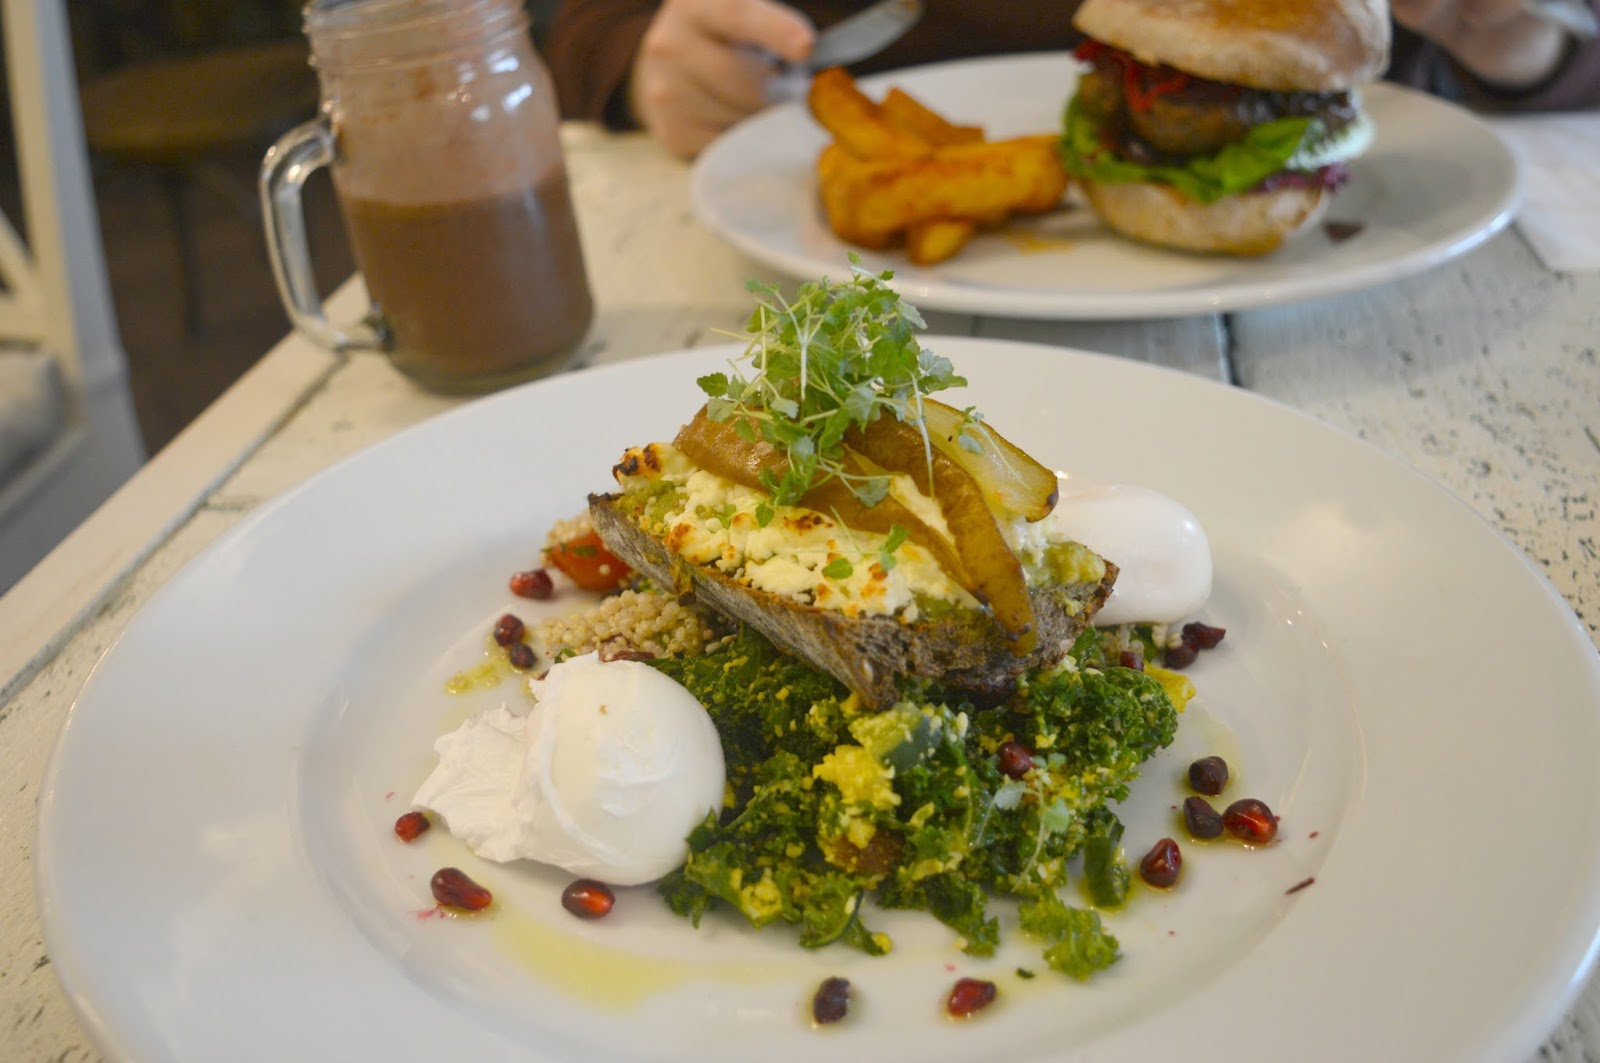 A Weekend in Harrogate - Filmore and Union